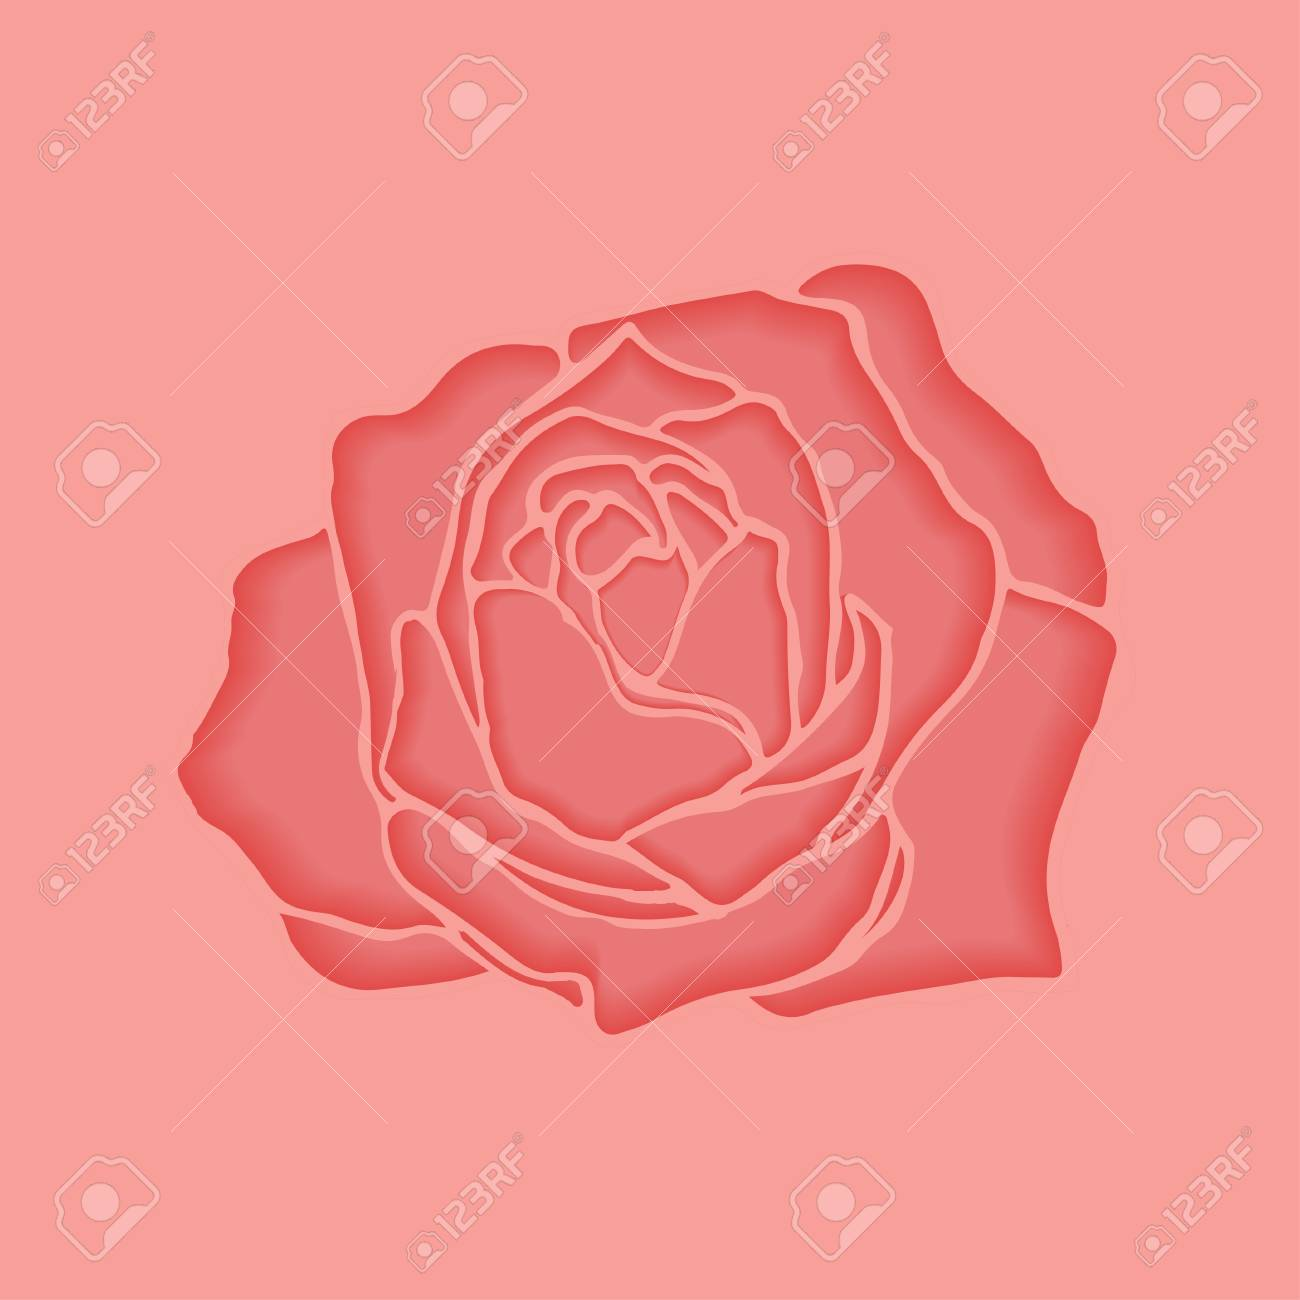 Cut Paper Pink Rose For Backgrounds, Cards, Wedding Invitations ...